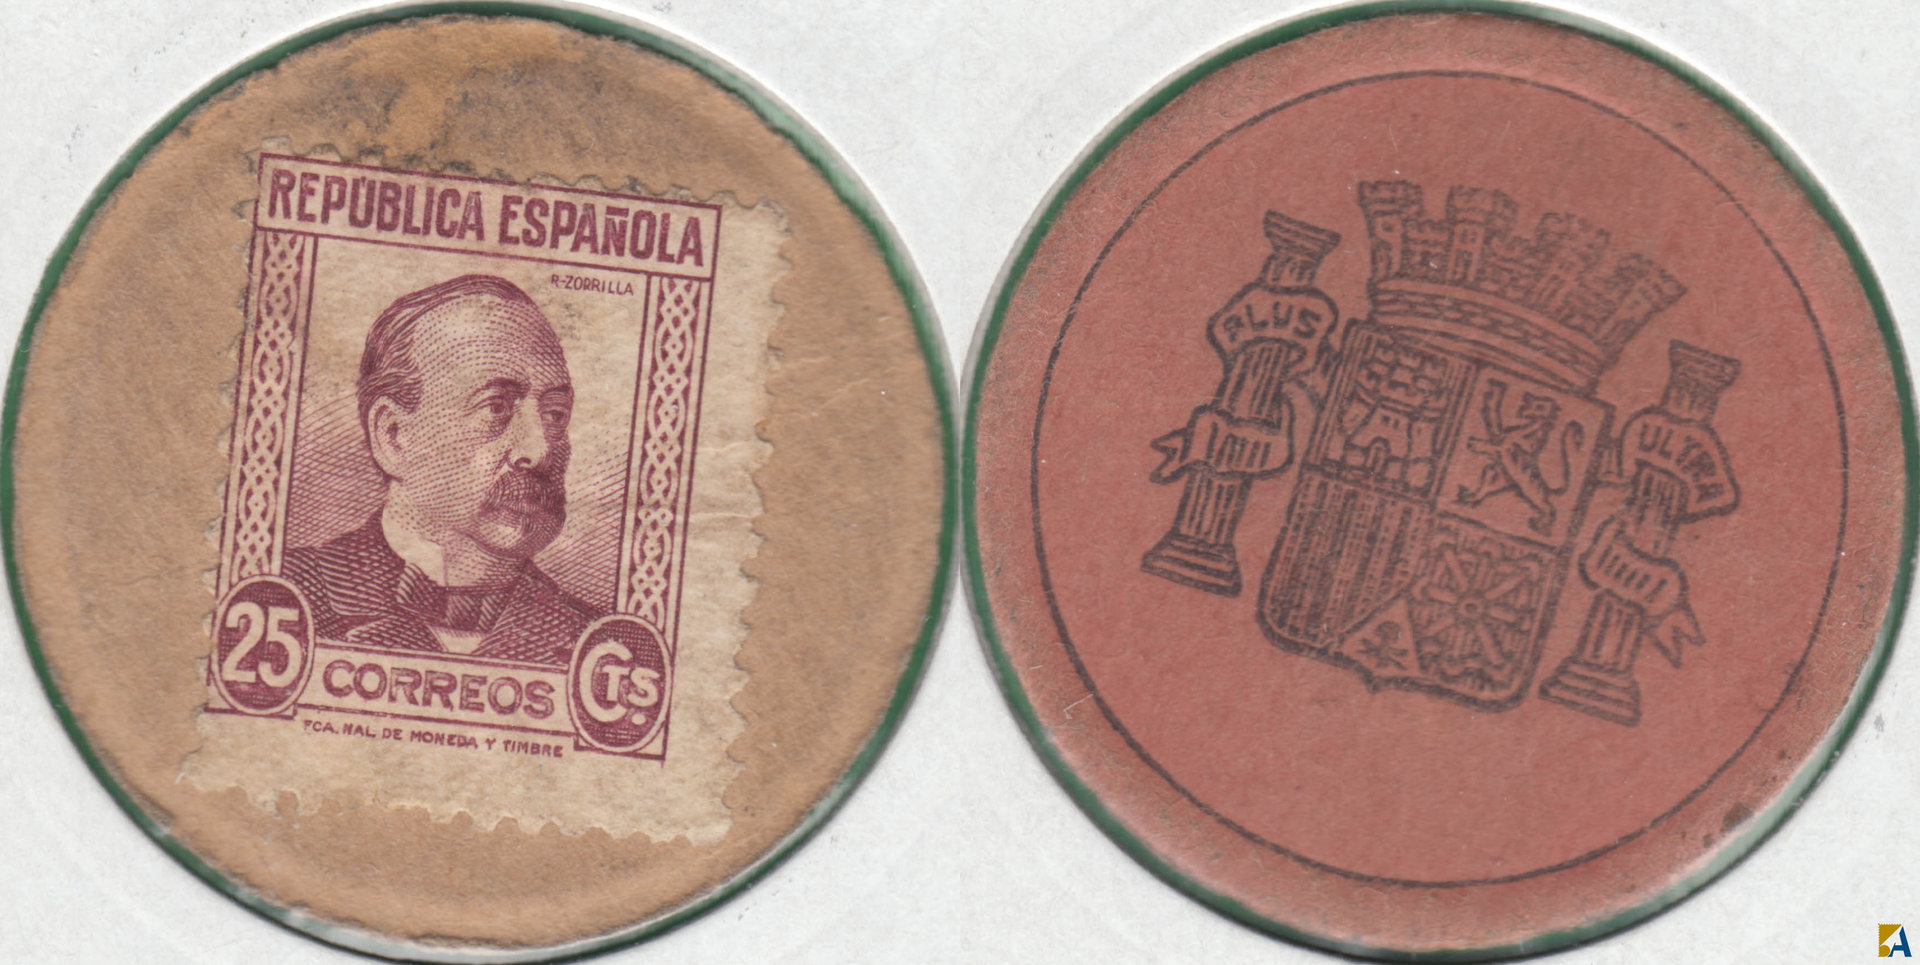 II REPUBLICA. MONEDA DE EMERGENCIA. 25 CENTIMOS DE 1938. R.ZORRILLA.